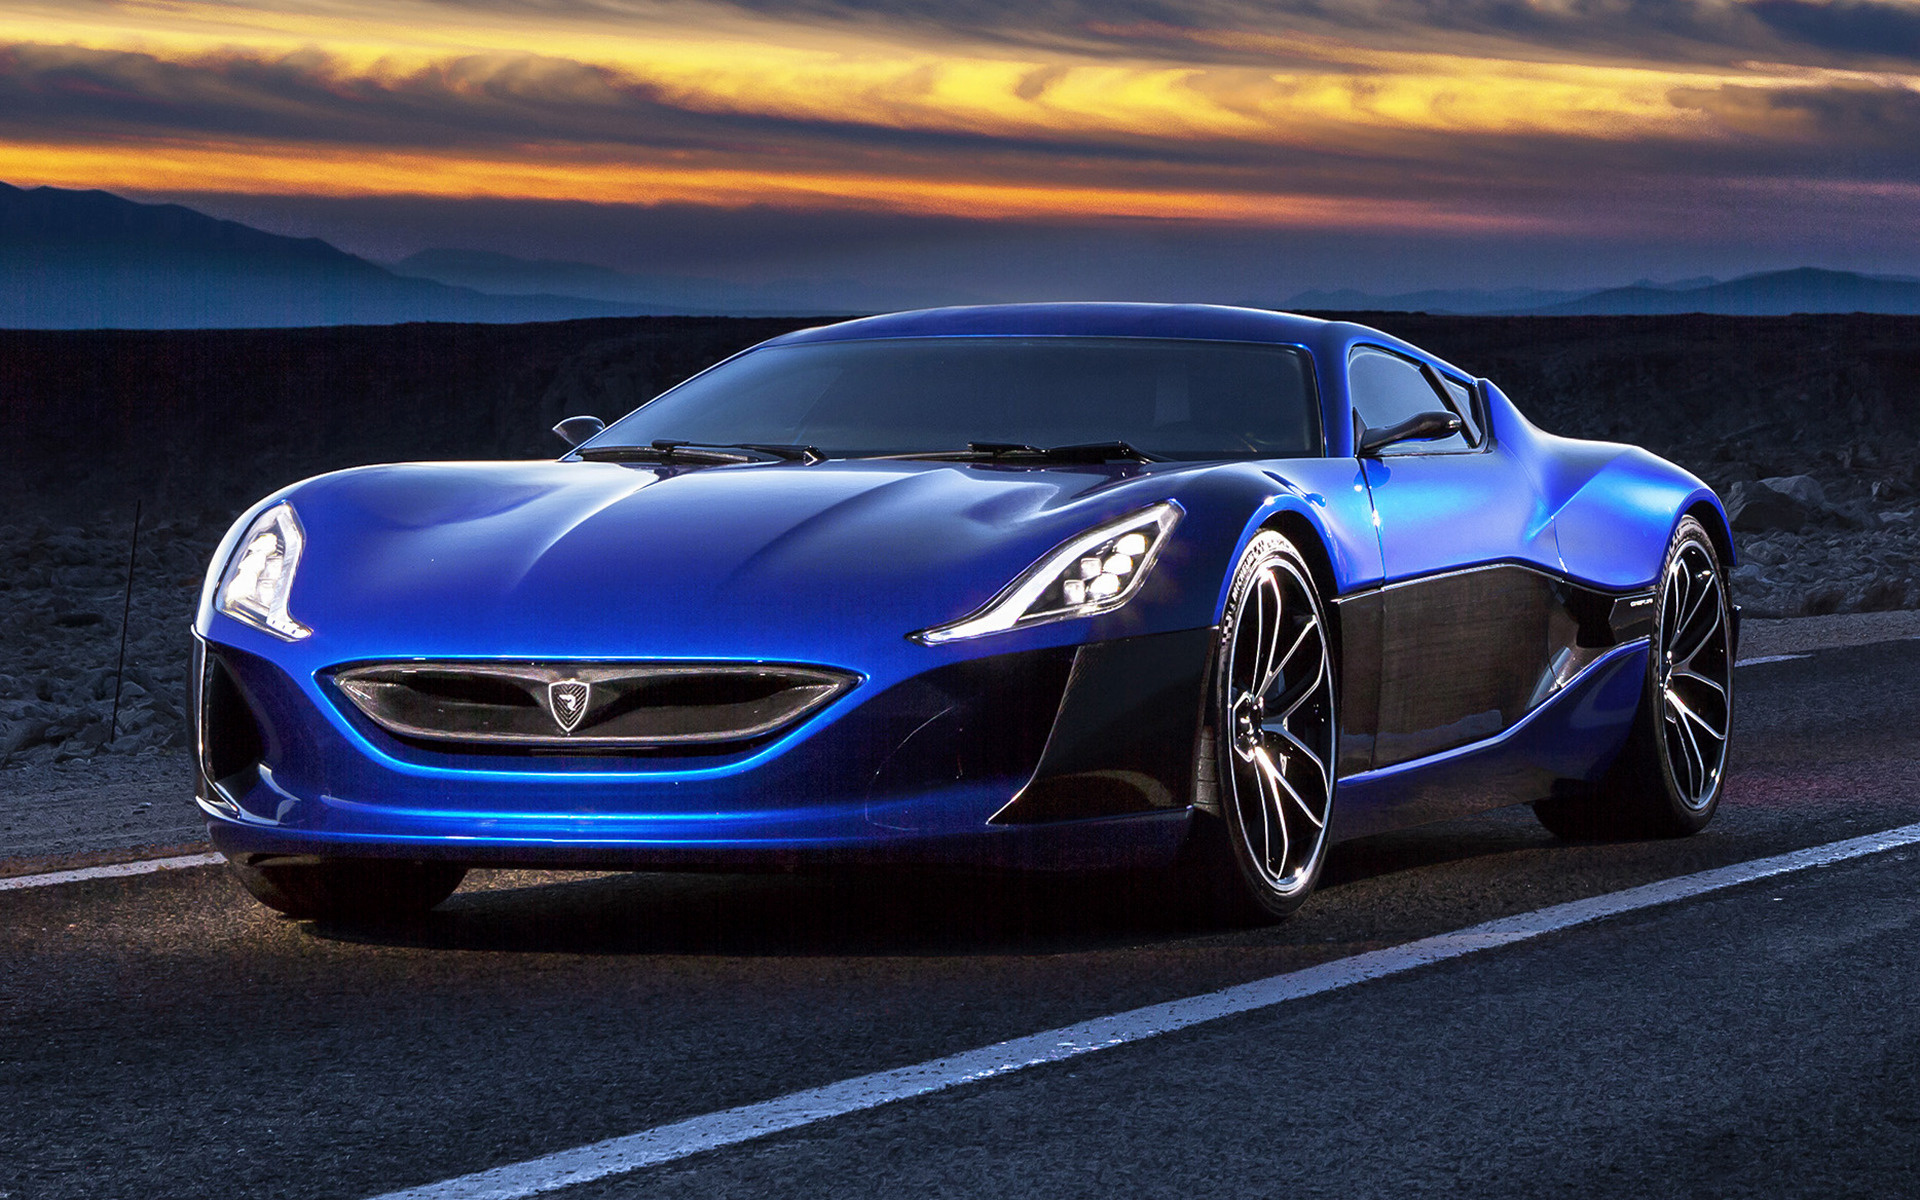 2014 Rimac Concept_One - Wallpapers and HD Images | Car Pixel